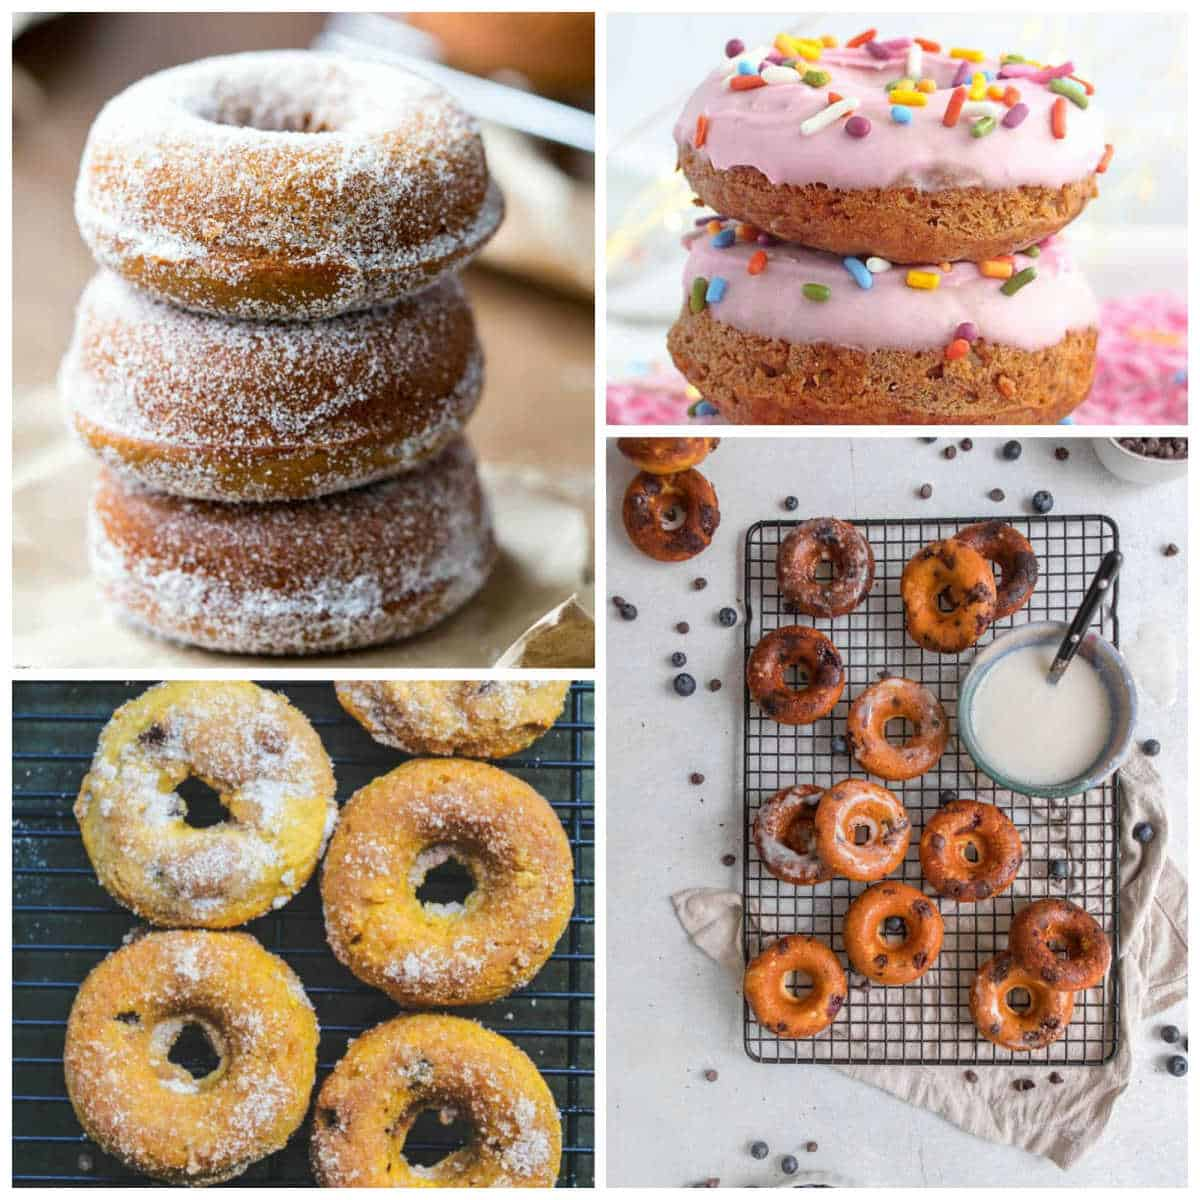 Flat lays and stacked doughnuts with glaze and toppings creating a mosaic